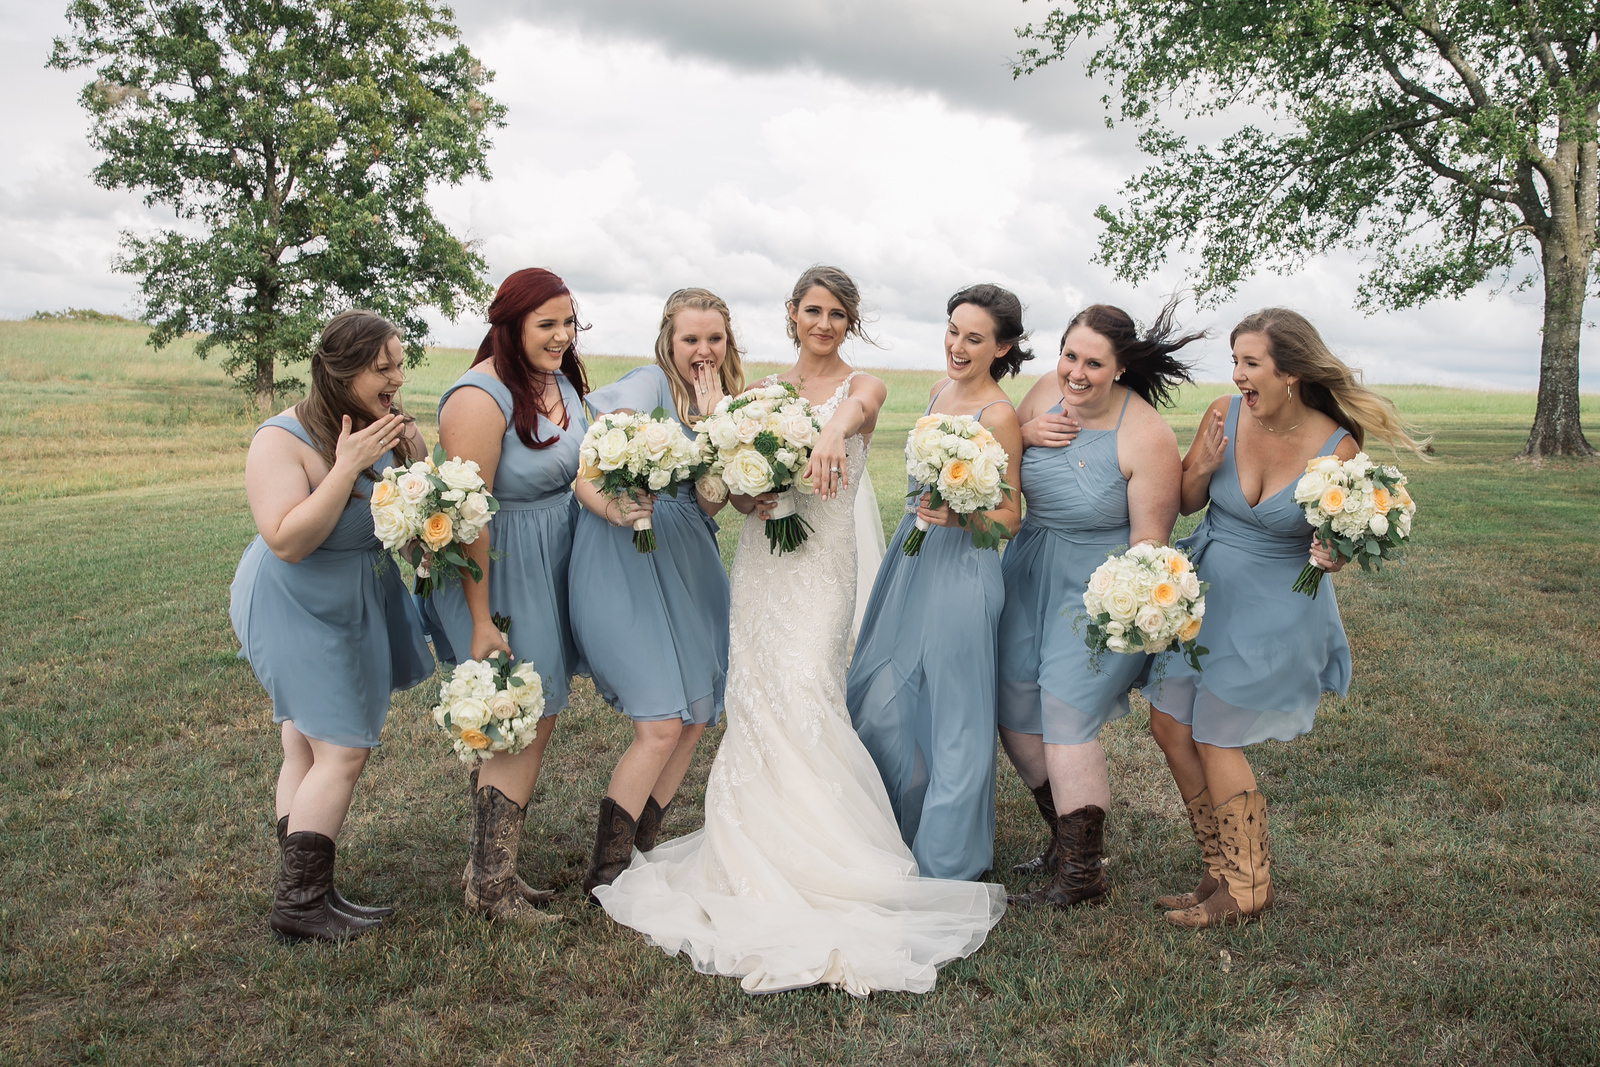 a group of bridesmaids looking at a bride's engagement ring